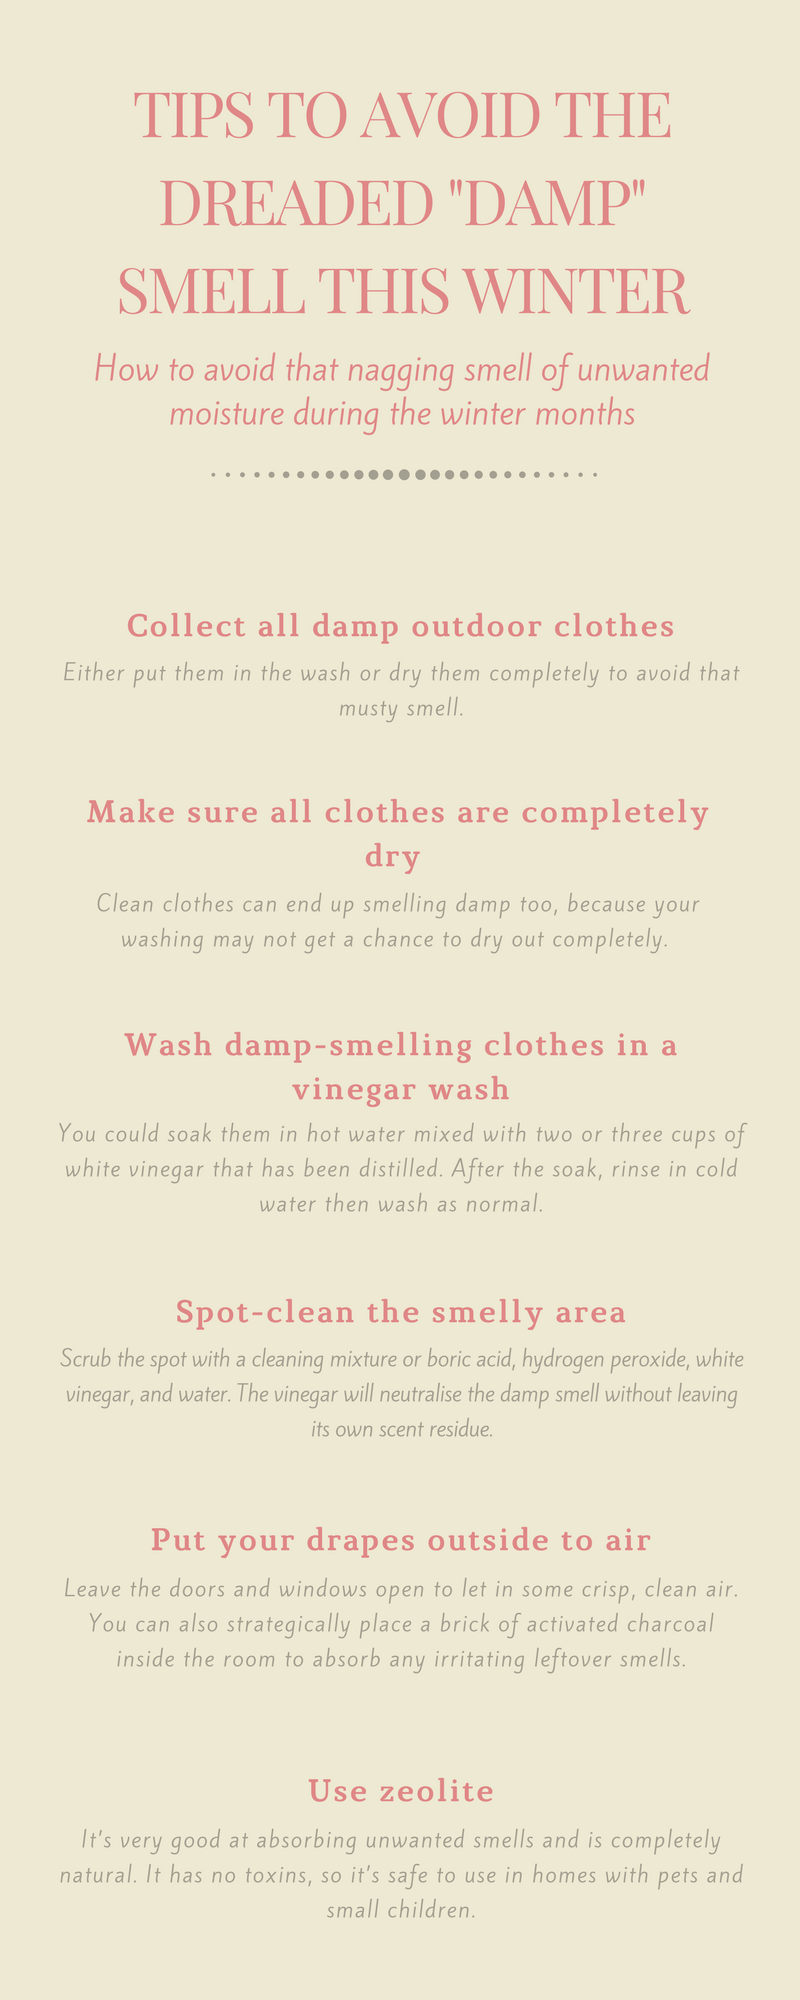 10 Tips to Avoid The Dreaded Damp Smell This Winter